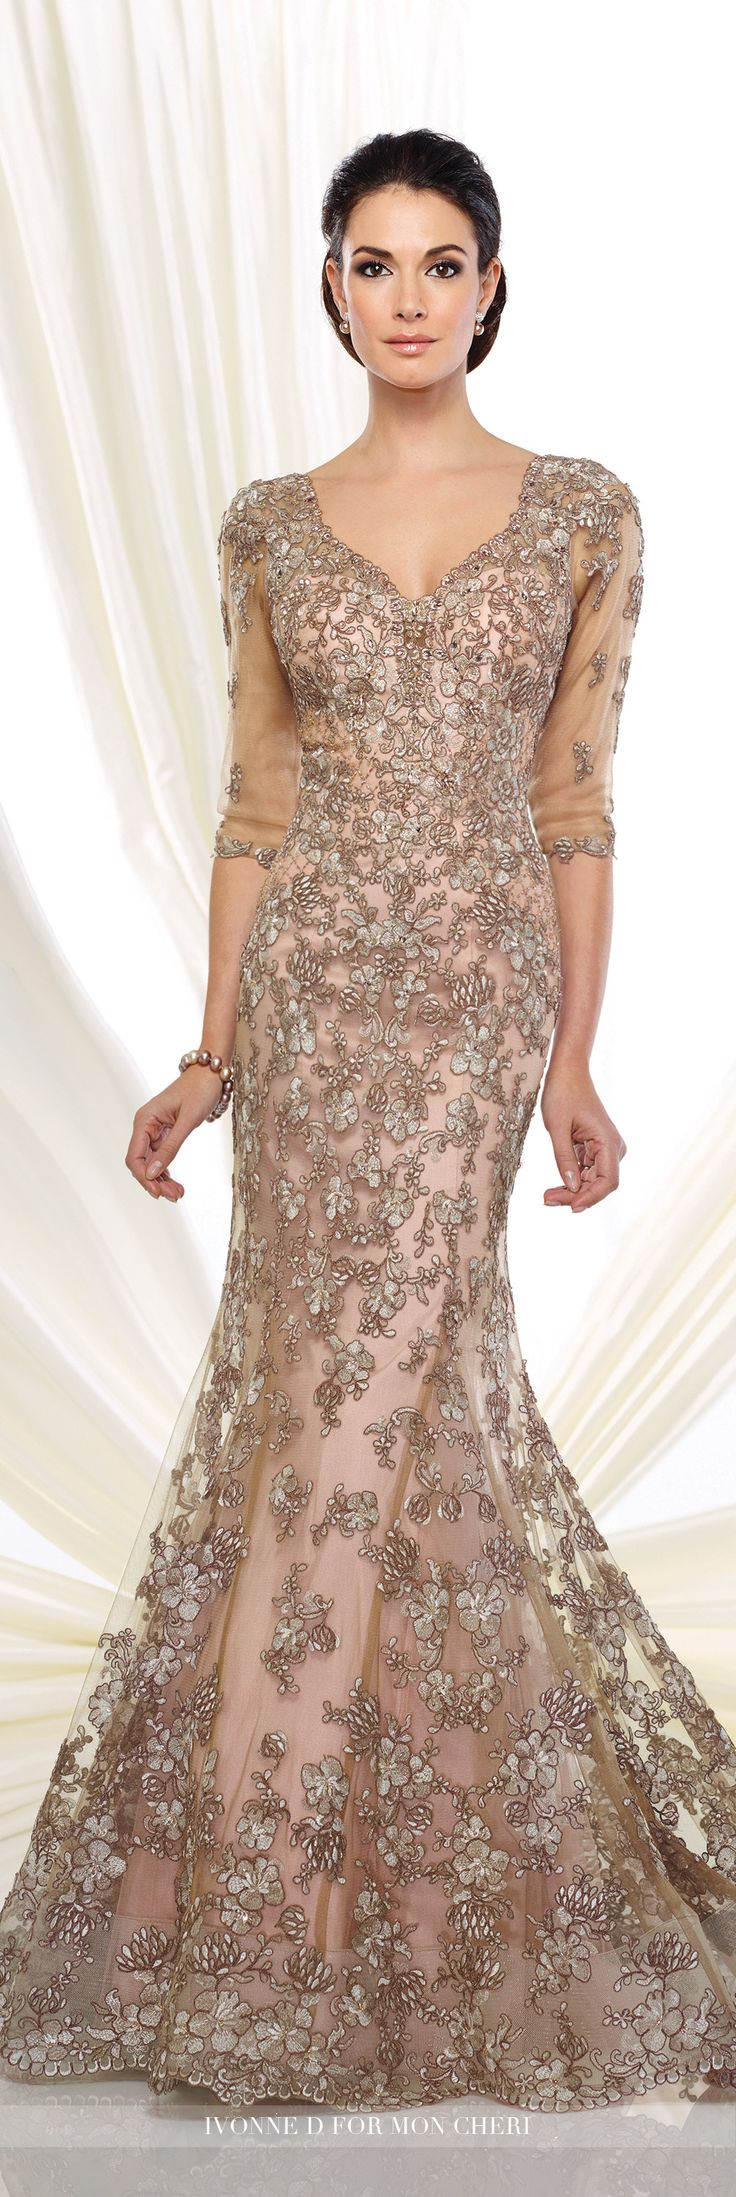 Ivonne D Exclusively for Mon Cheri - 216D52 - Tulle trumpet dresswith hand-beaded and illusion lace three-quarter length sleeves, front and back curved V-necklines, sweetheart bodice, horsehair hemline, sweep train.  Sizes: 4 - 20, 16W - 26W  Taupe/Pink, Oyster